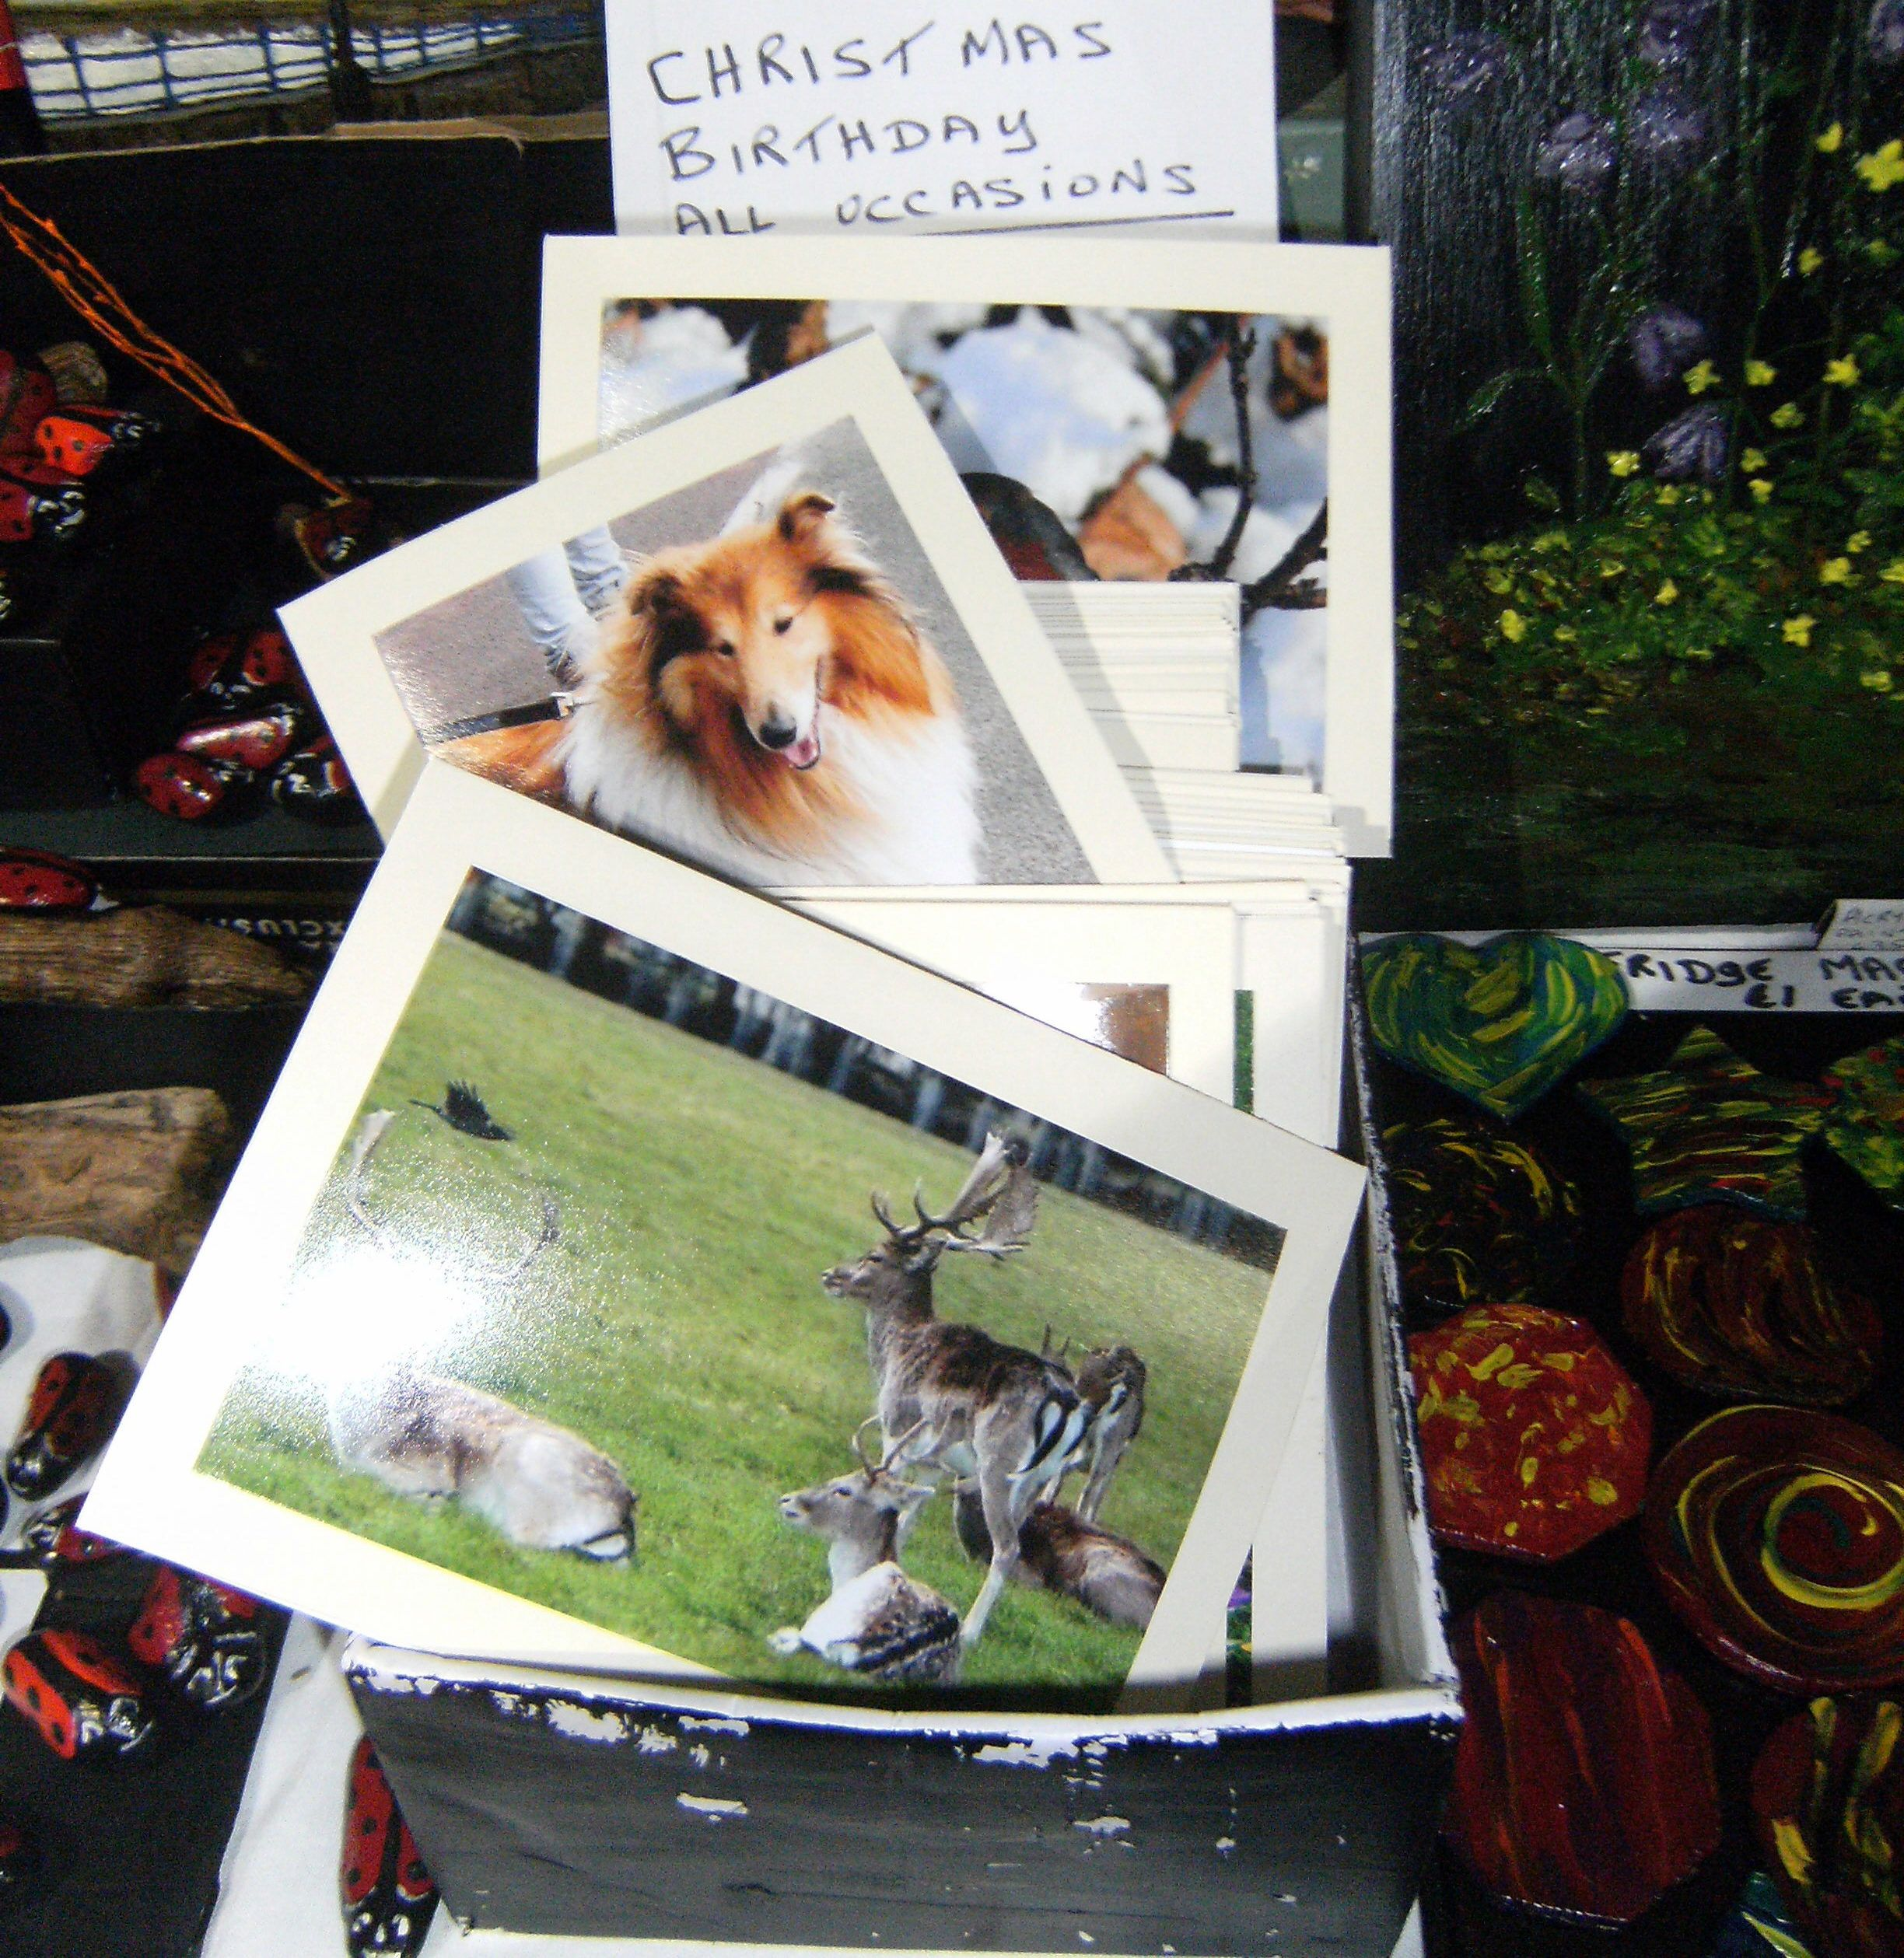 How To Sell Crafts at Shows Fairs: Earn Money with a Home Business http://viking305.hubpages.com/hub/How-to-make-greeting-cards-sell-at-craft-fairs-business-earn-money-card-birthday-Christmas-market-research-crafts